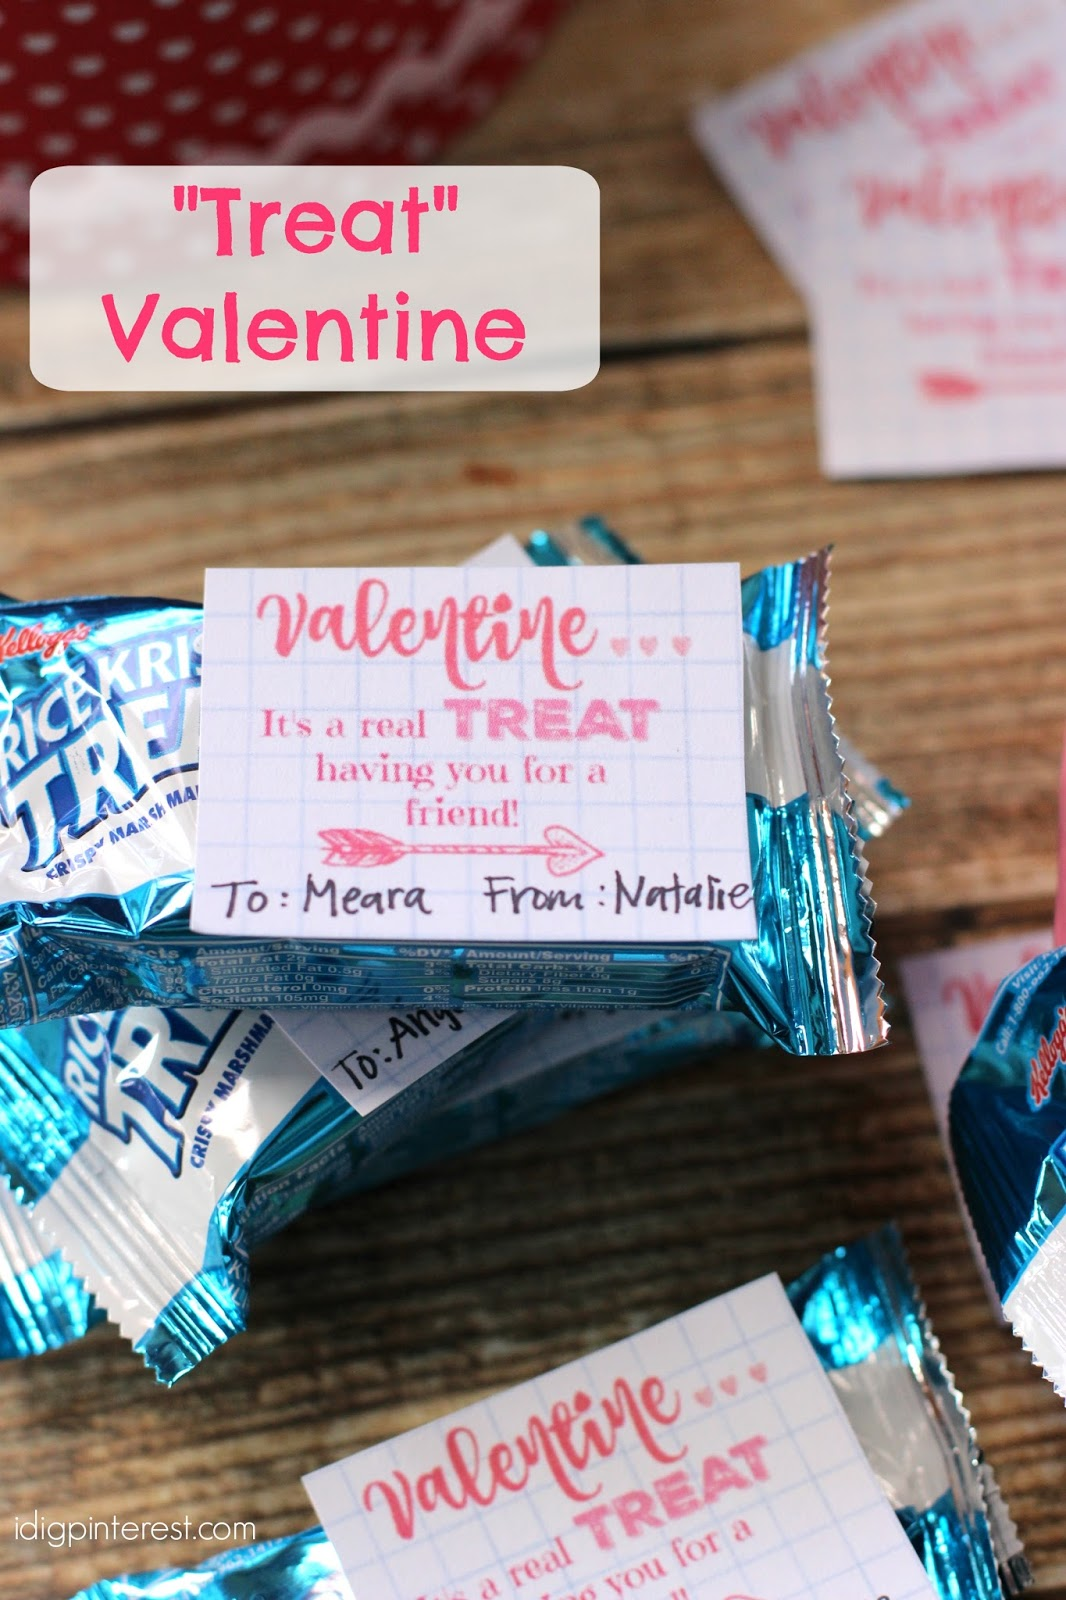 U201cTreatu201d Valentine Idea With Free Printable Tags